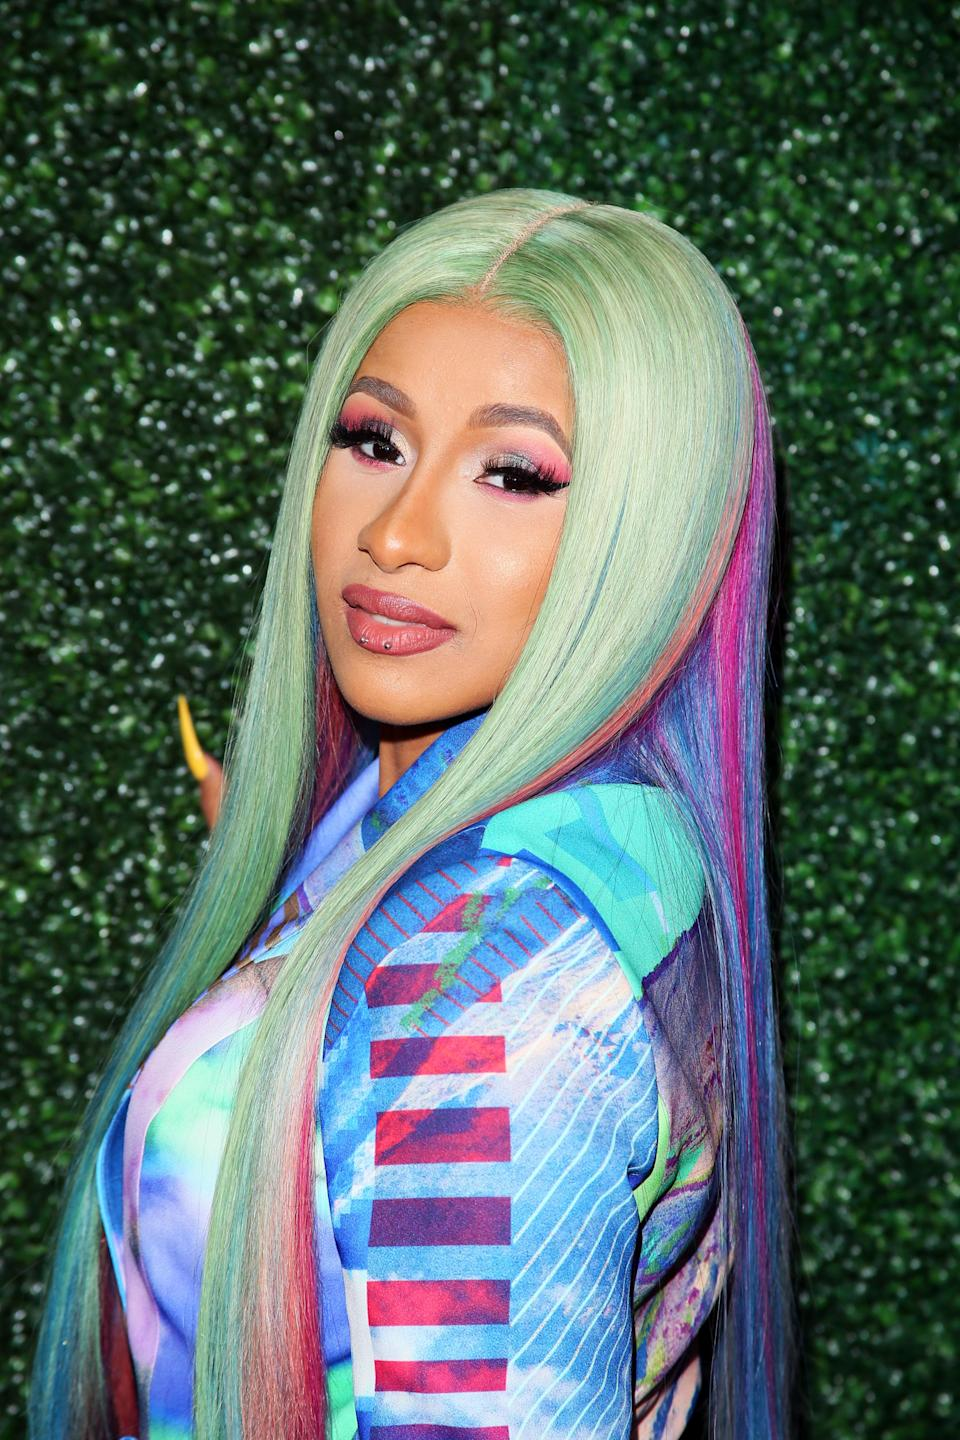 """Rapper Cardi B, whose birth name is Belcalis Marlenis Almánzar, took it upon herself to reveal how she got her stage name. """"My name is Belcalis,"""" she <a href=""""https://twitter.com/iamcardib/status/755987030086221824"""" rel=""""nofollow noopener"""" target=""""_blank"""" data-ylk=""""slk:tweeted"""" class=""""link rapid-noclick-resp"""">tweeted</a> in 2016. """"Growing up people called me Bacardi cause my sister name is Hennessy...FYI."""" The more you know!"""